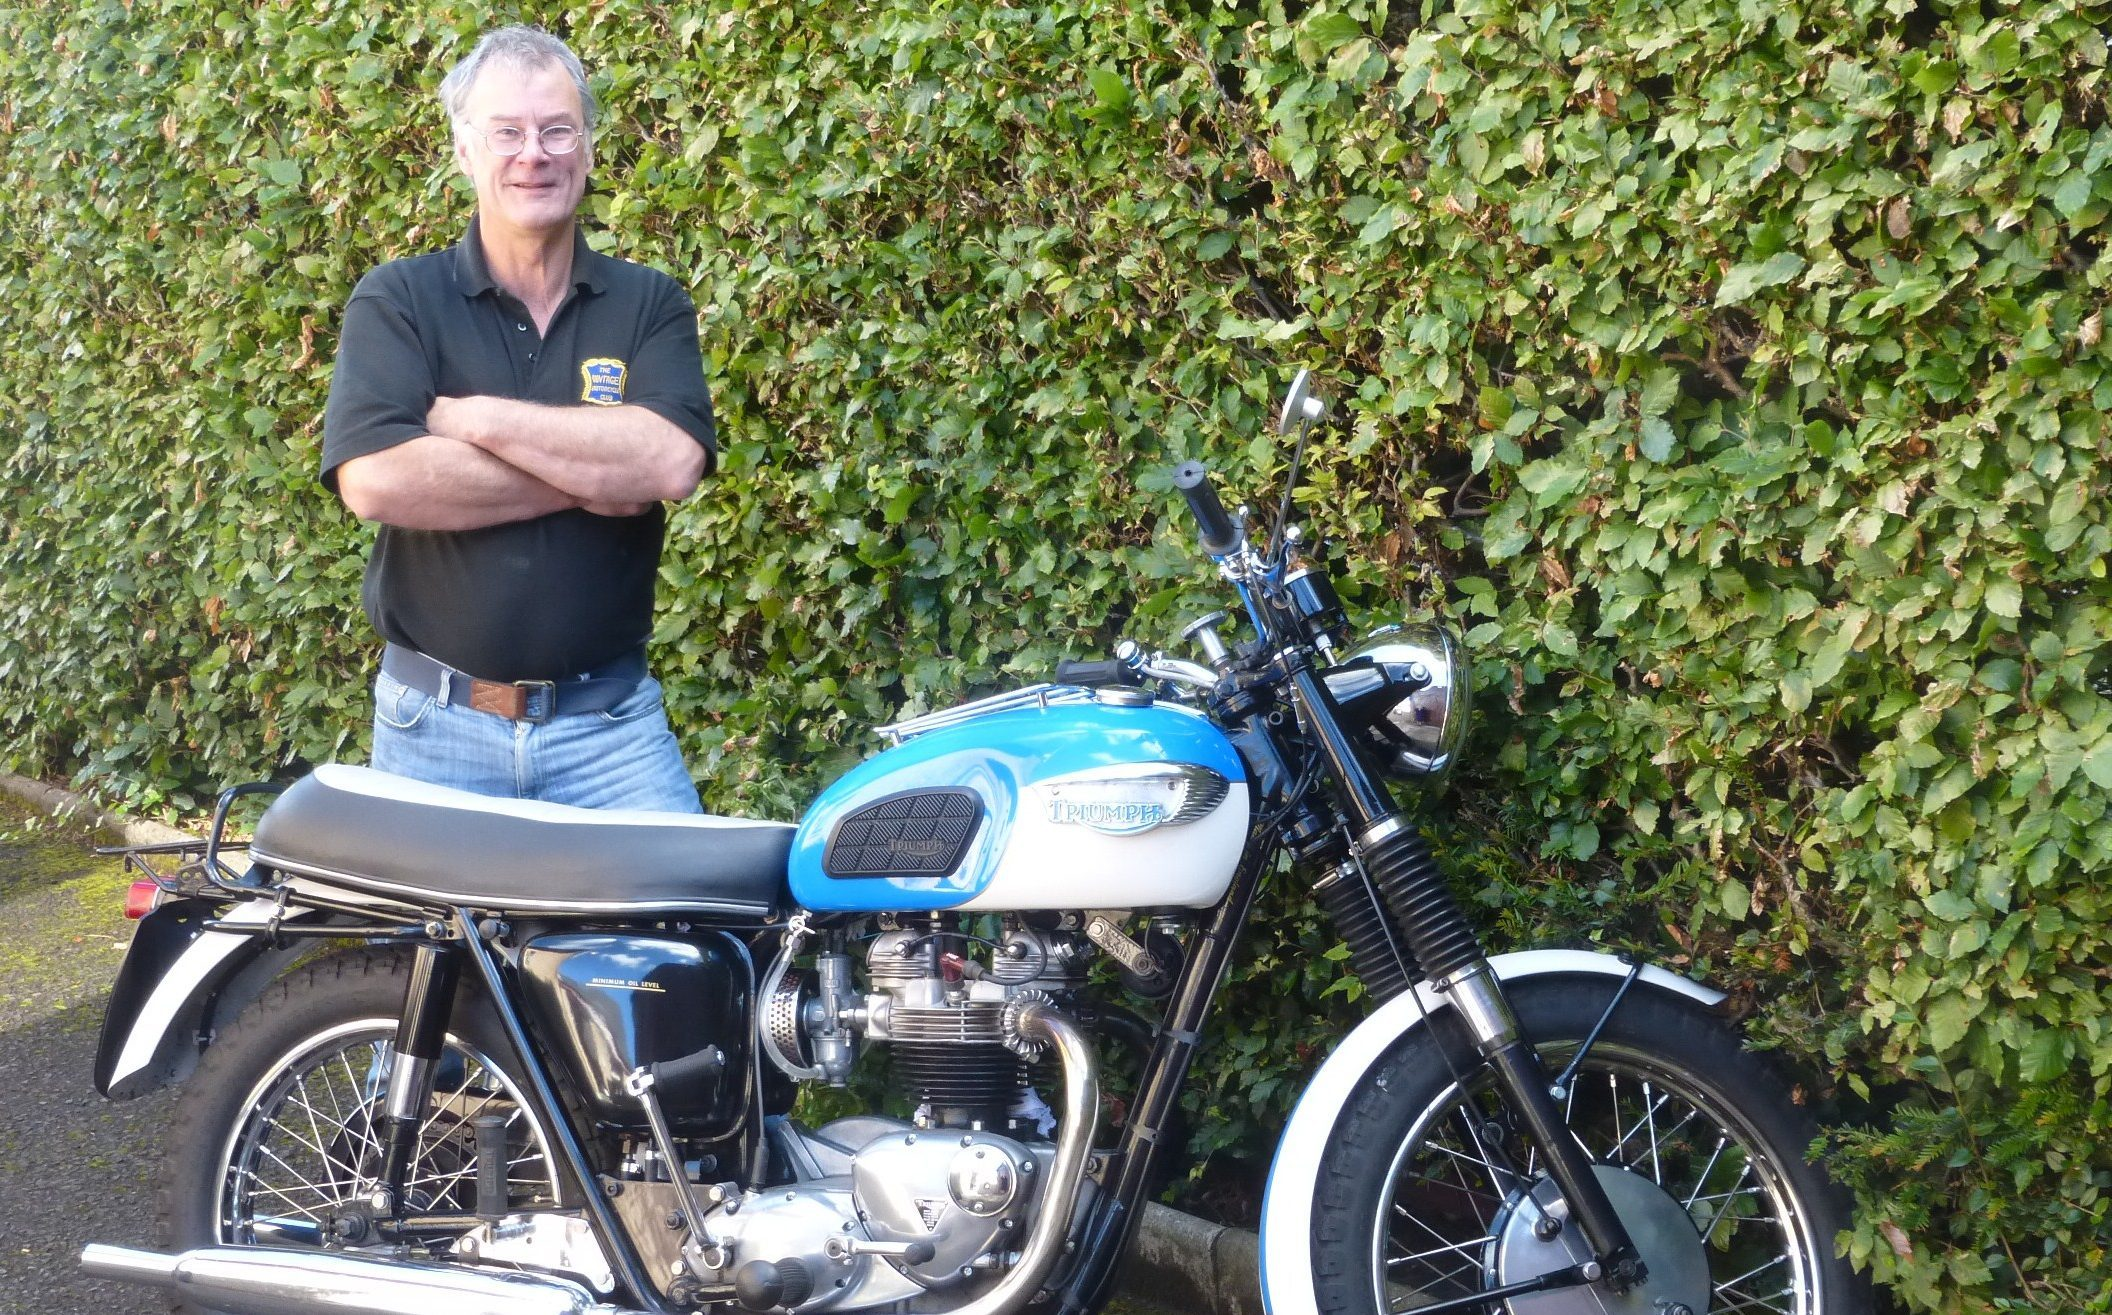 Rod Richardson of VMCC with his 1966 Triumph 650.